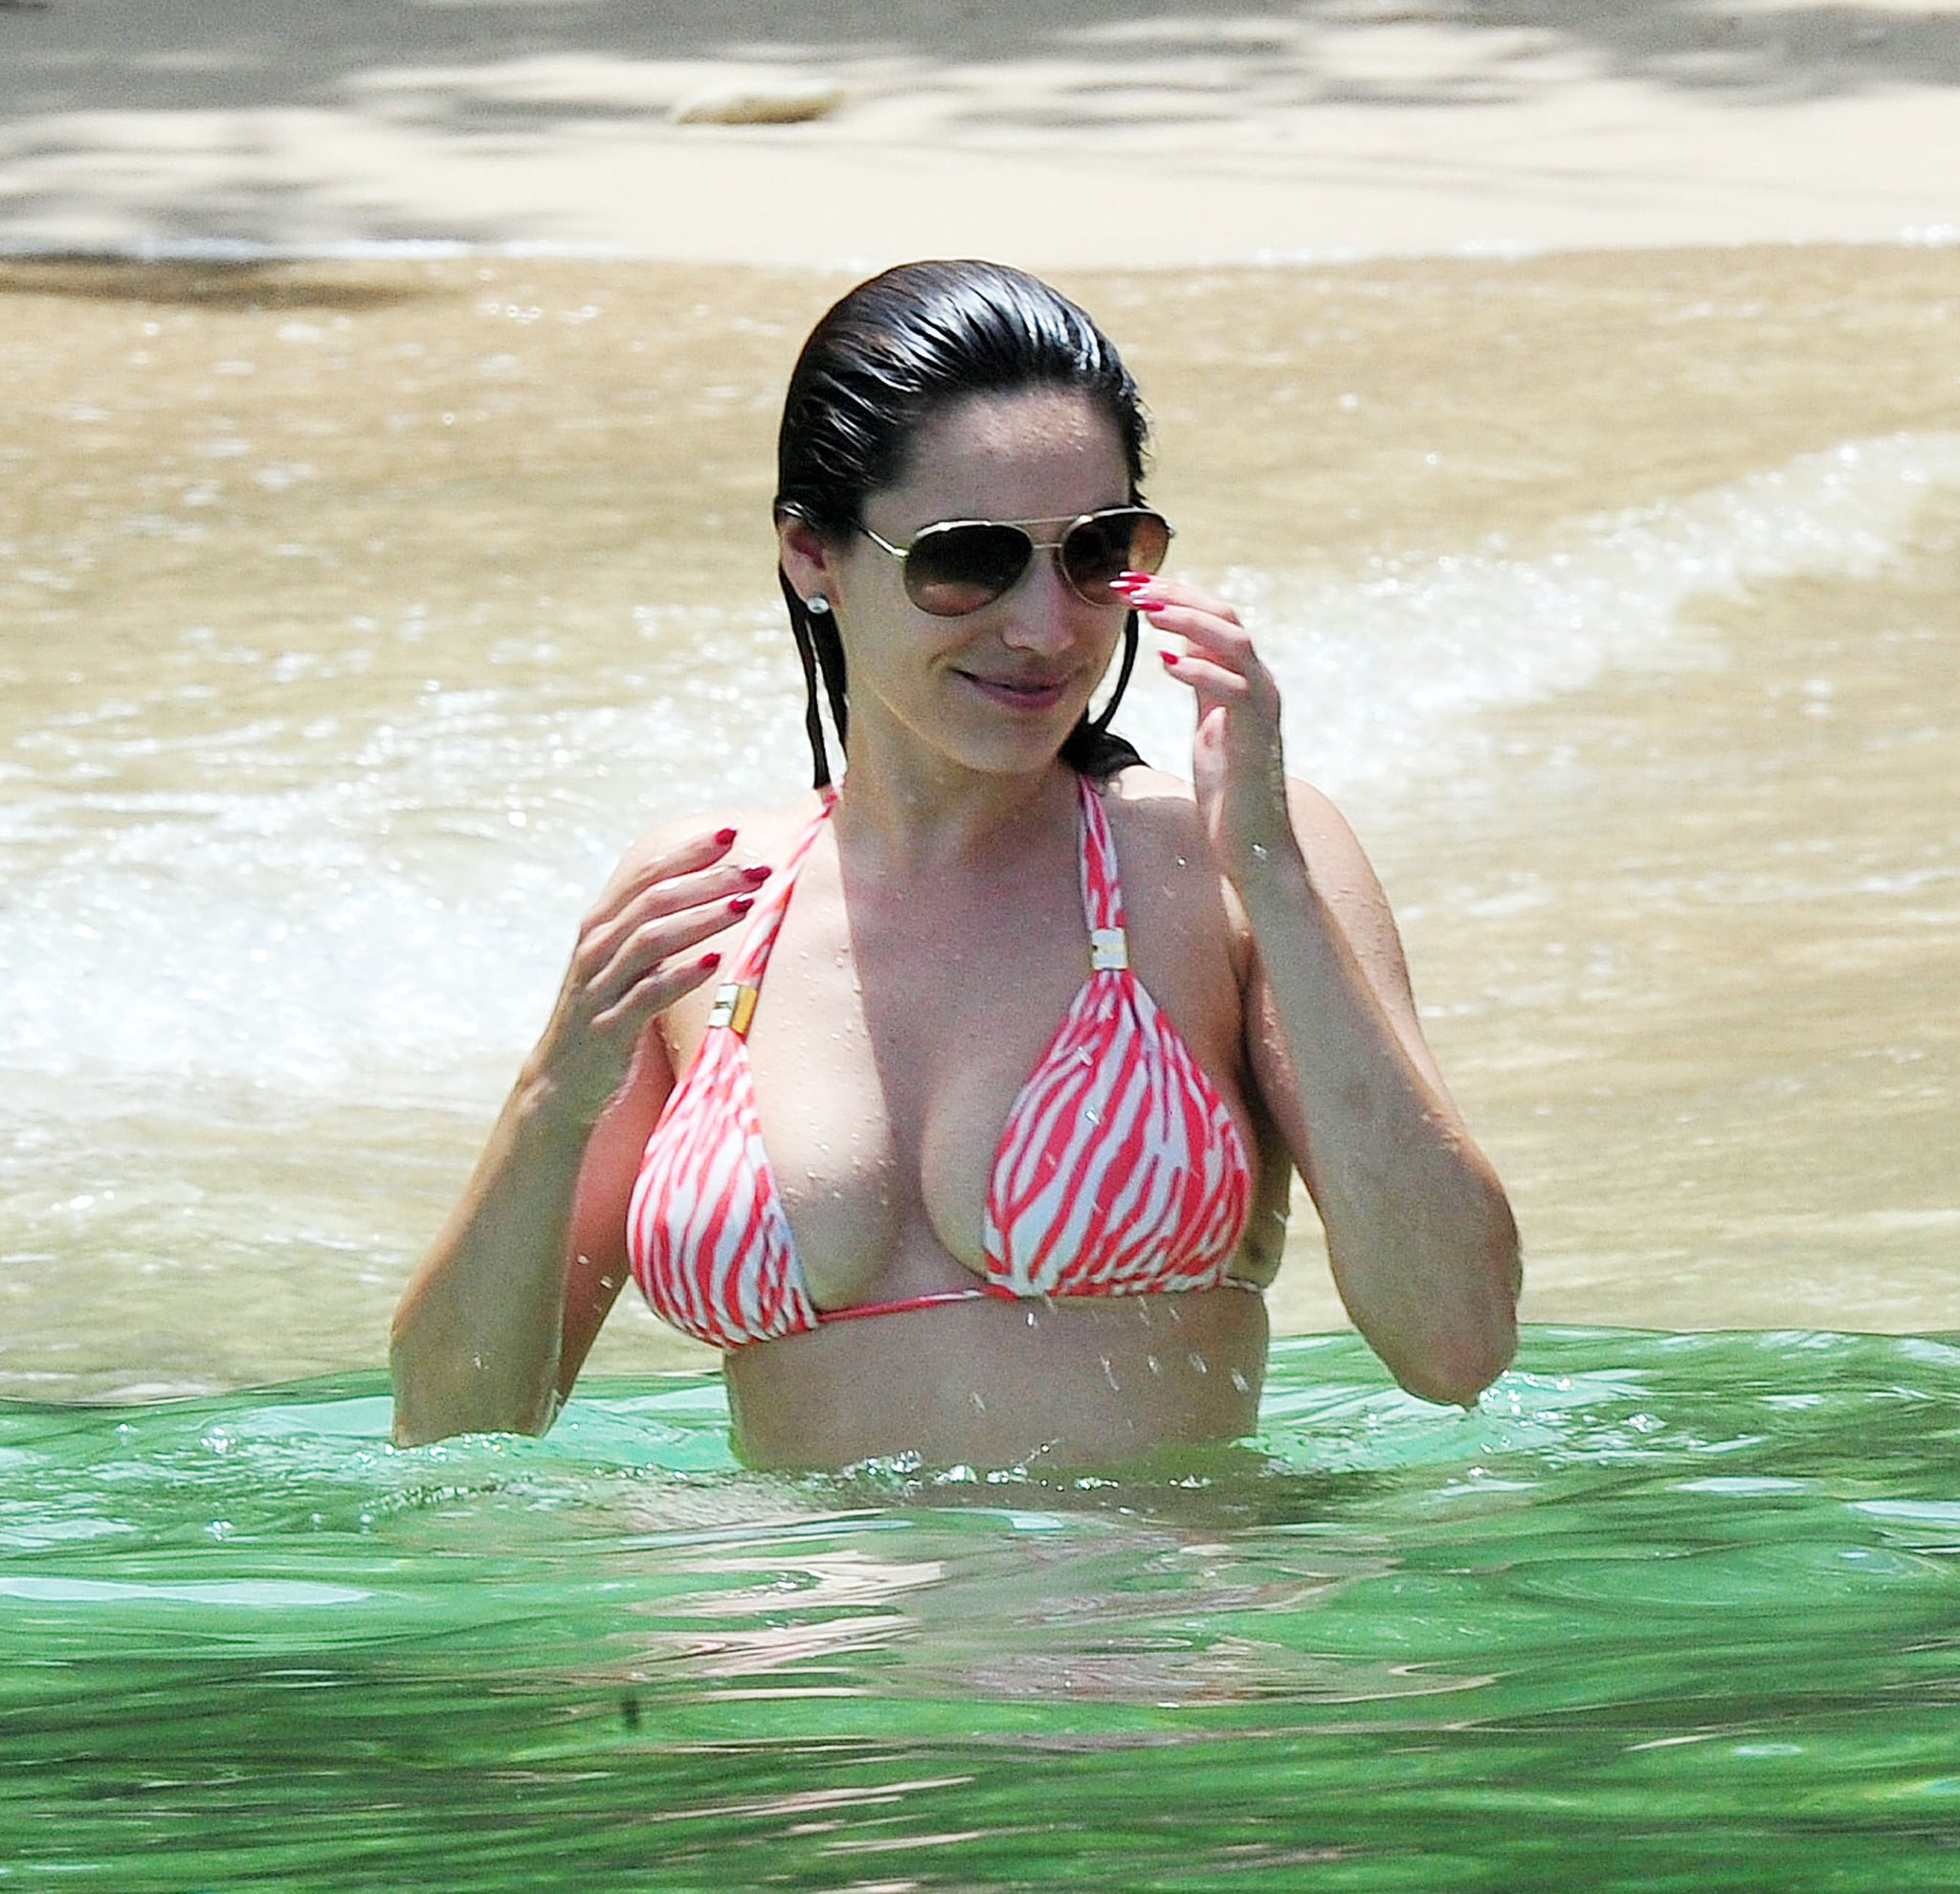 Kelly Brook in Patterned Bikini on the beach in Thailand Pic 7 of 35